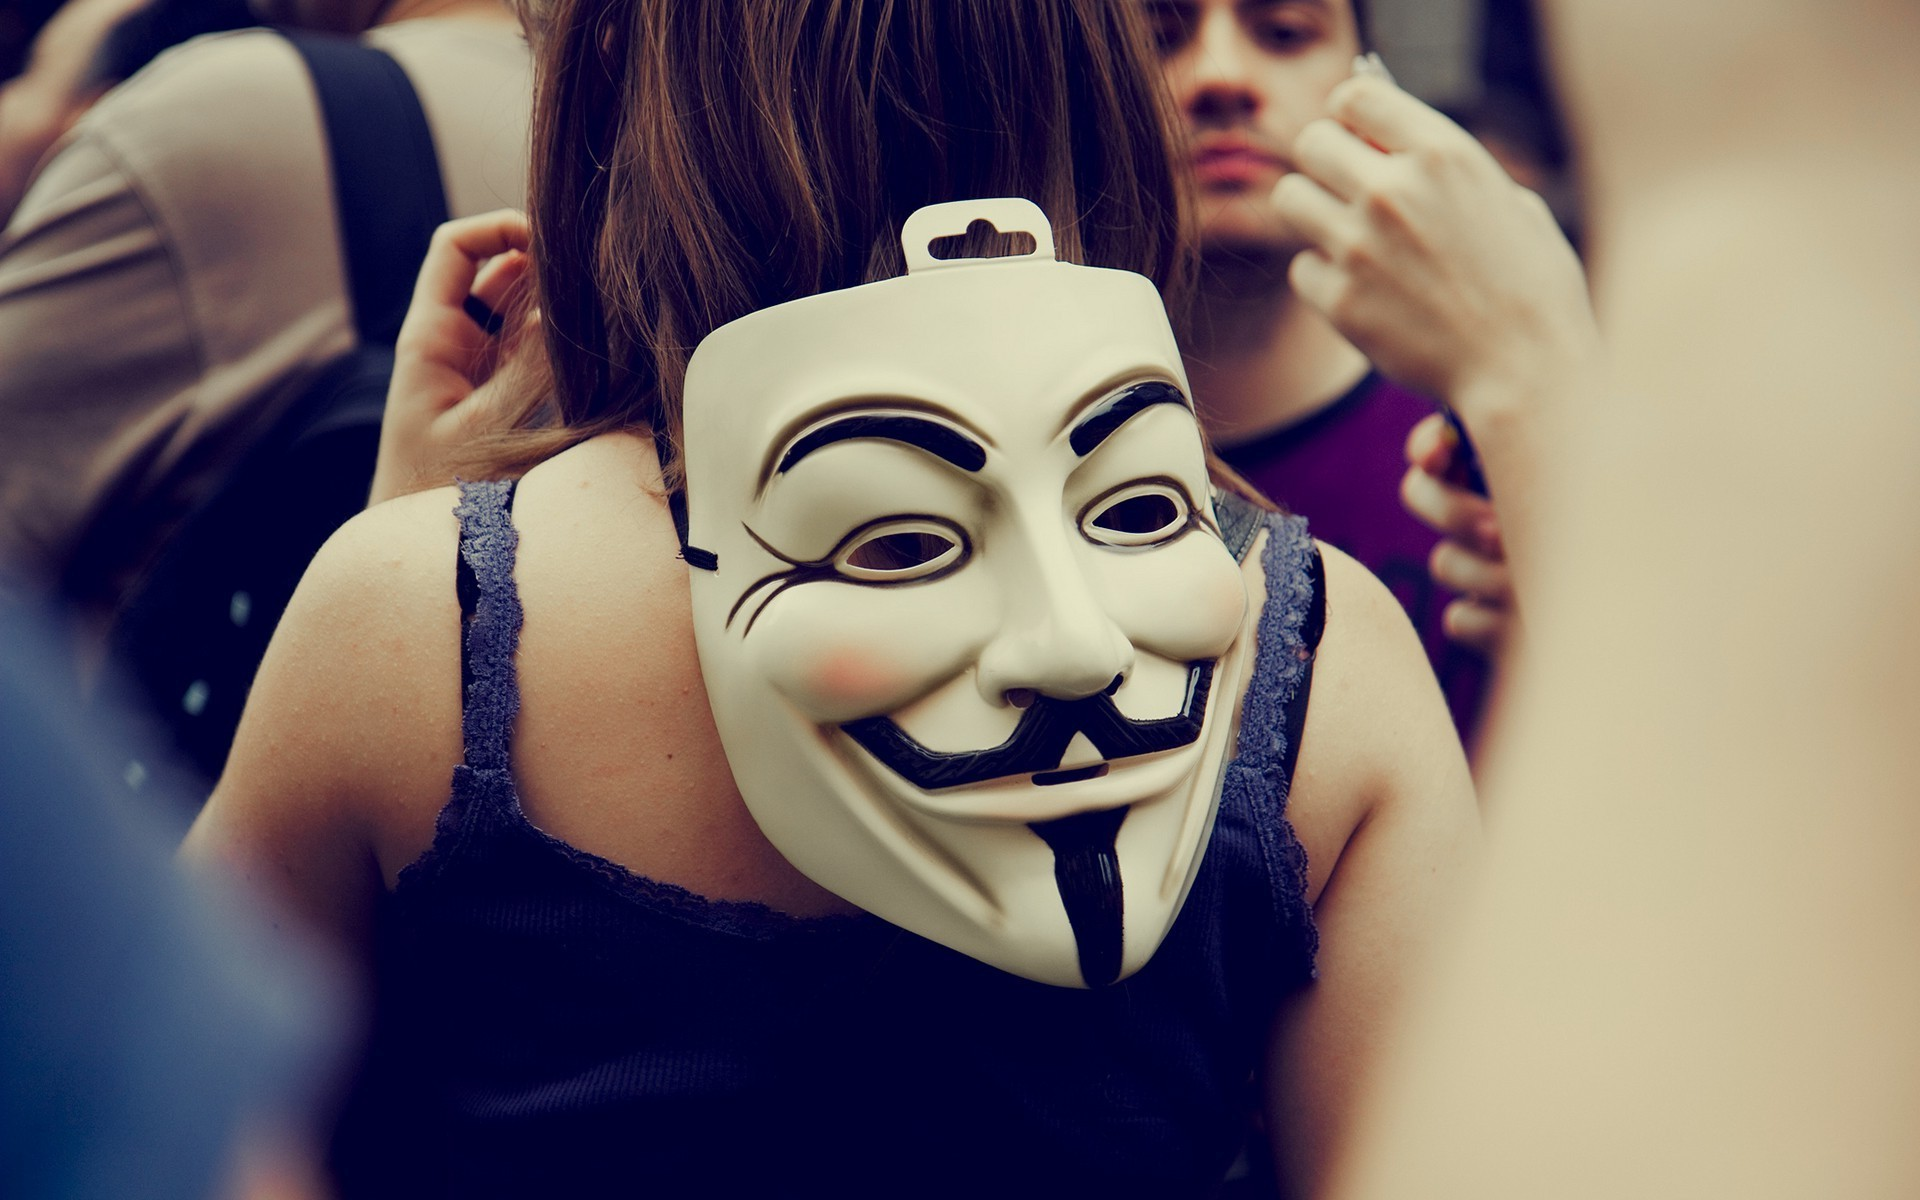 Girl Face Wallpaper 5k Anonymous Guy Fawkes Mask Back Wallpapers Hd Desktop